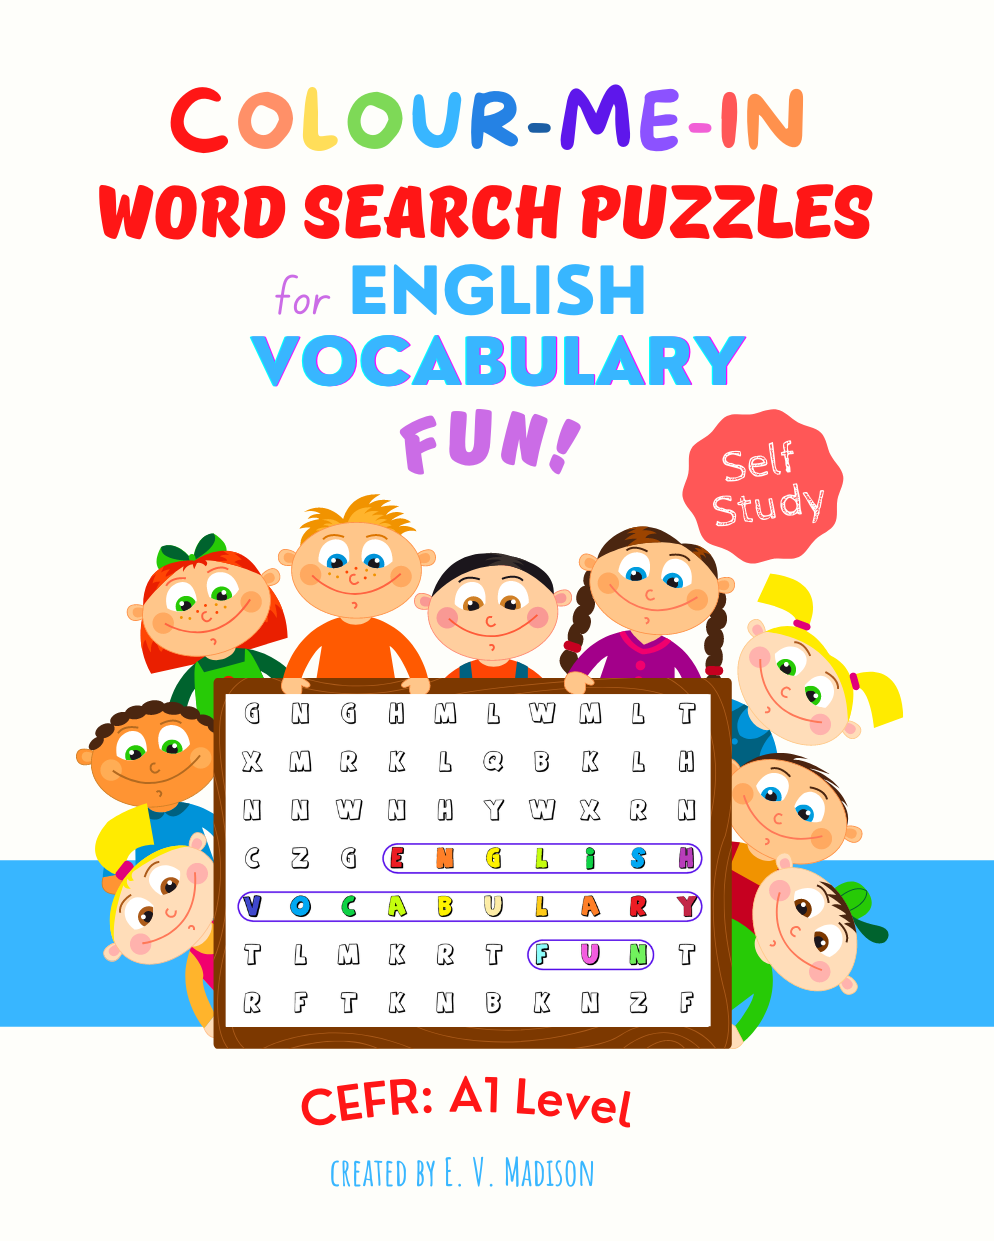 Colour-Me-In Word Search Puzzles for English Vocabulary Fun! A1 Level